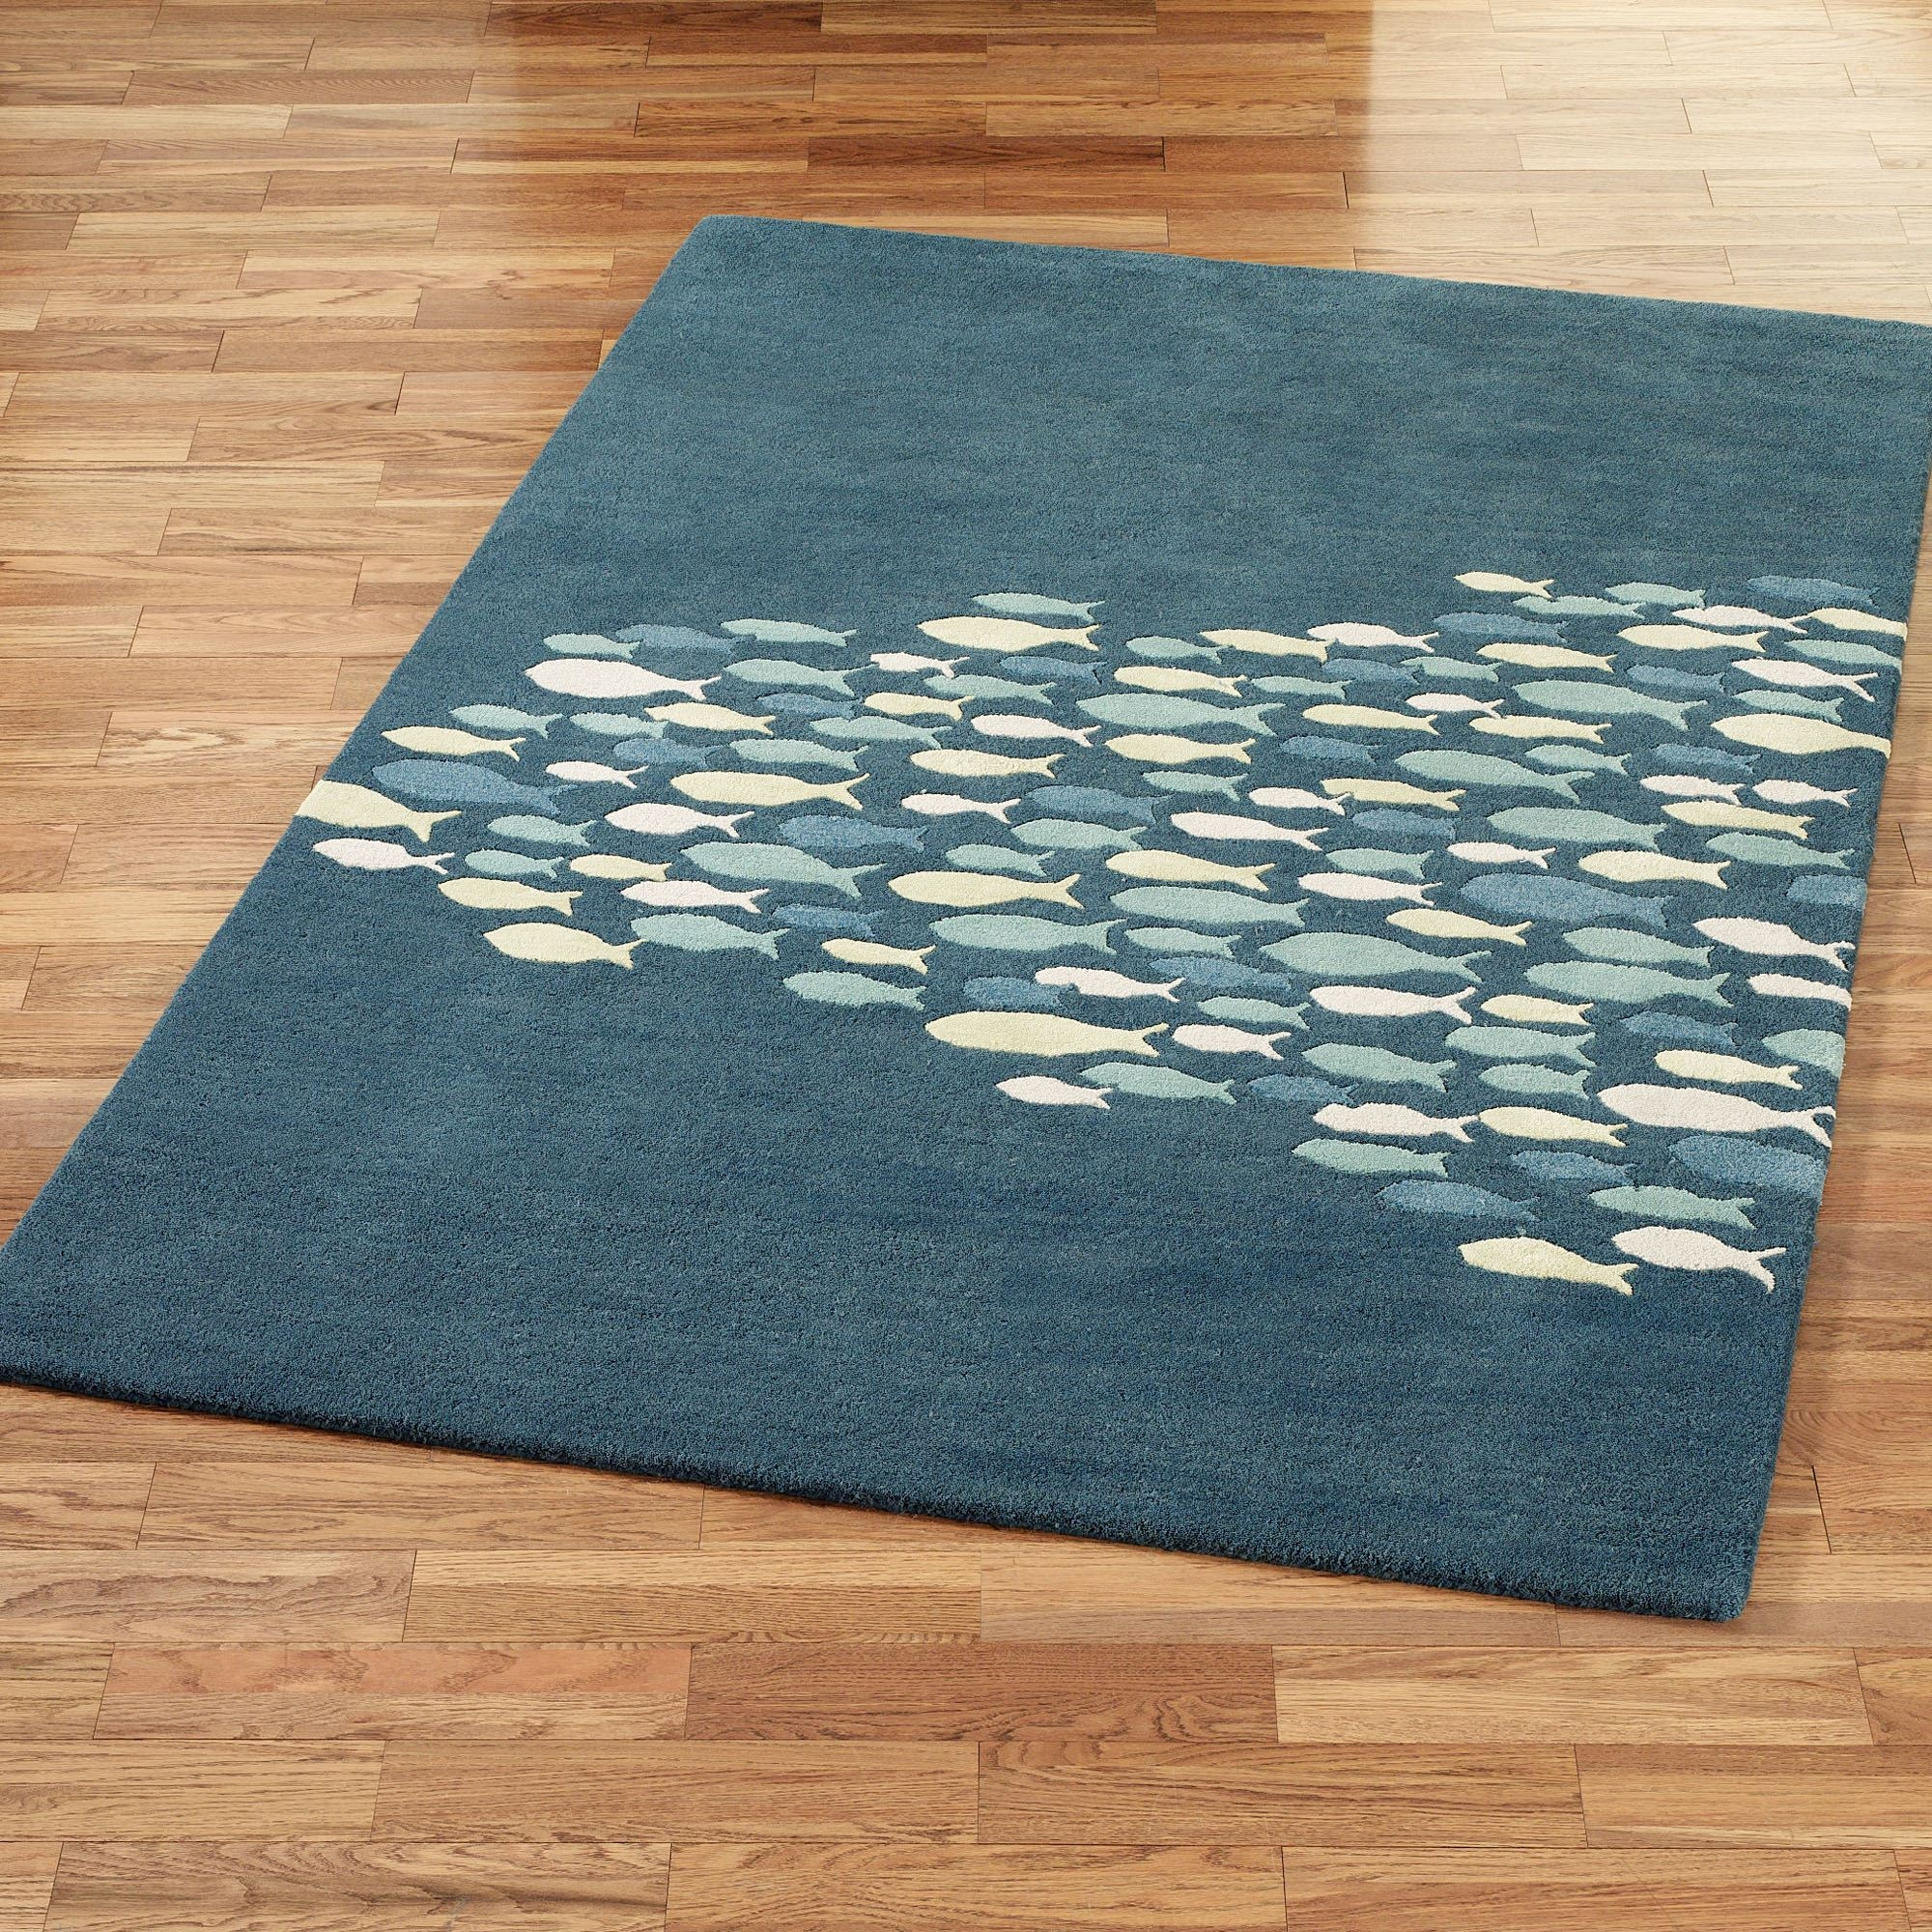 Schooled Fish Wool Area Rugs With Wool Area Rugs (#13 of 15)